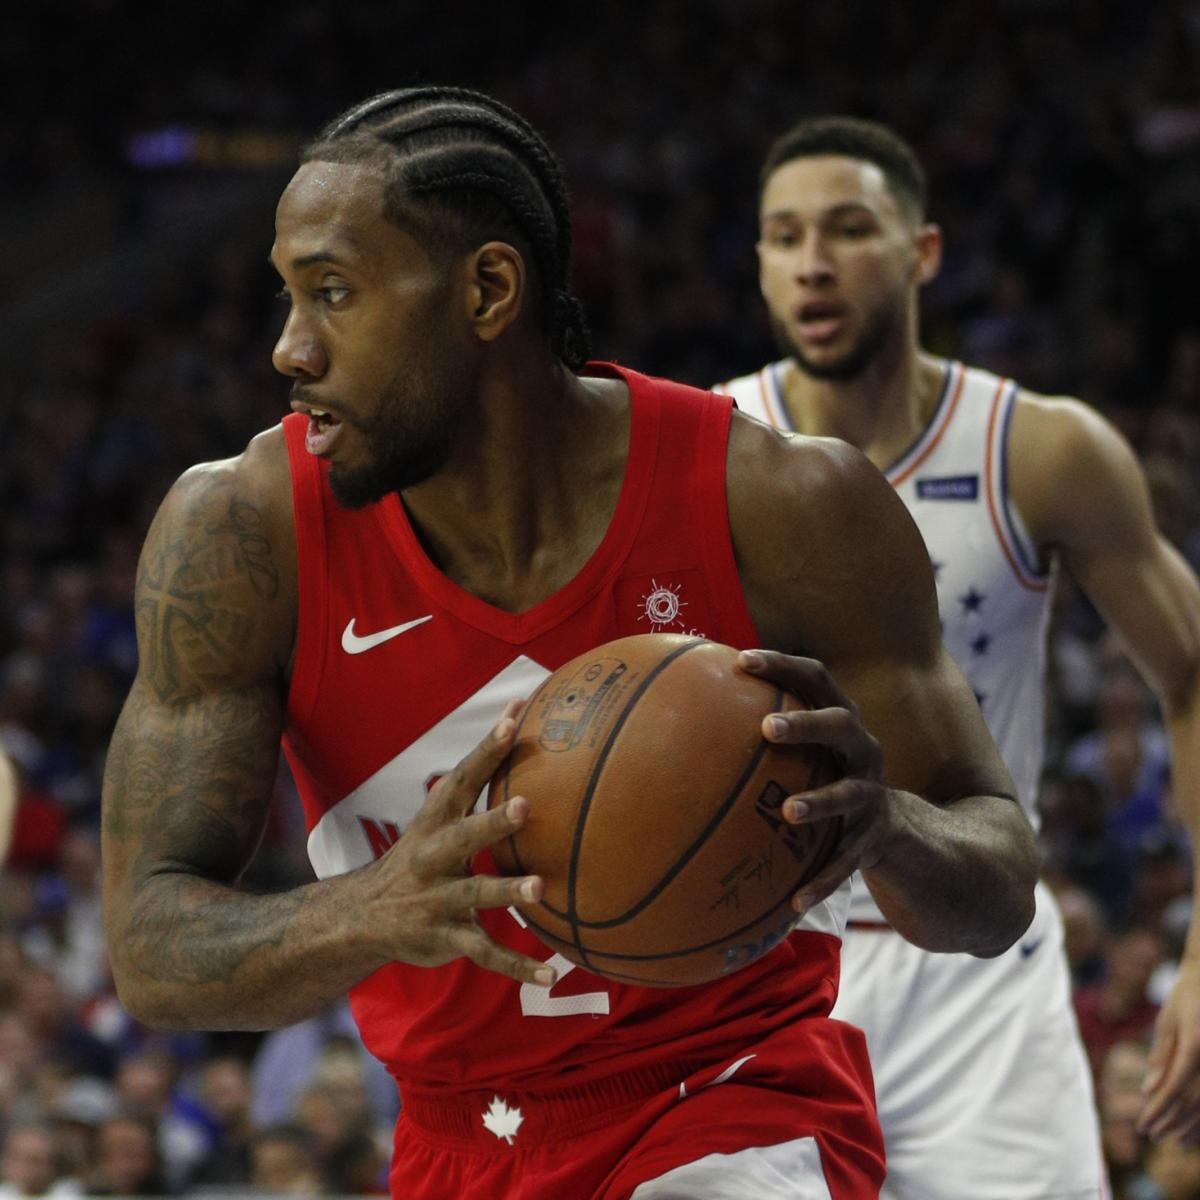 Warriors Game Live Stream Free Espn: NBA Finals 2019: Game 1 TV Schedule And Latest Warriors Vs